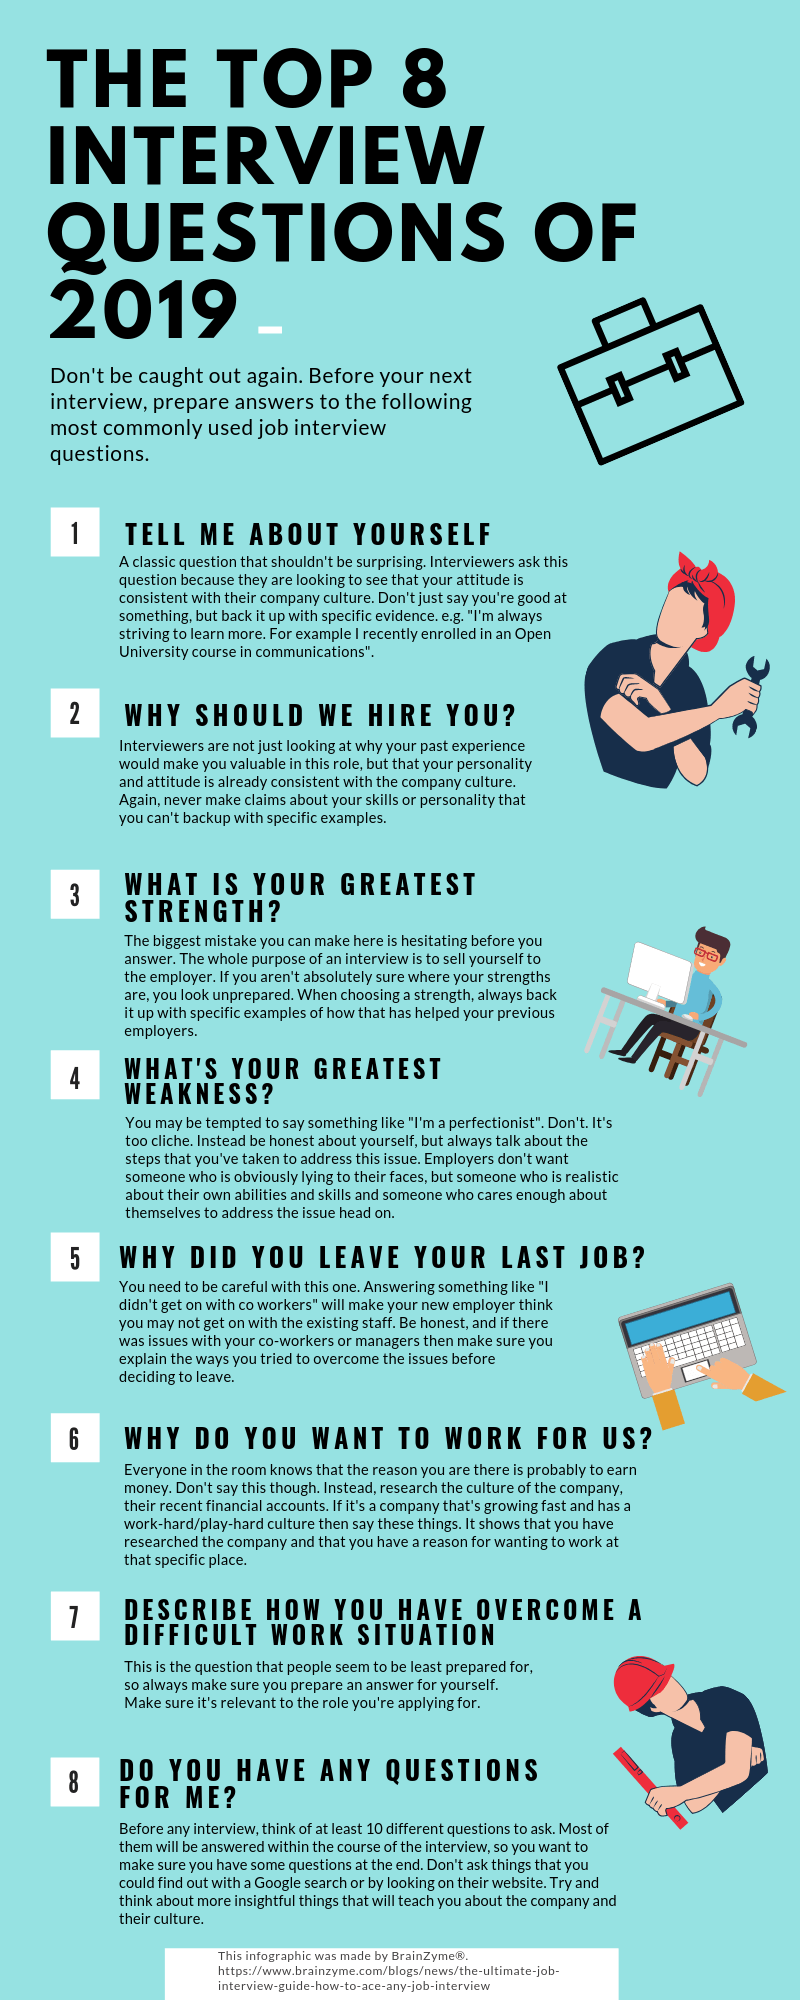 Most common job interview questions of 2019 infographic